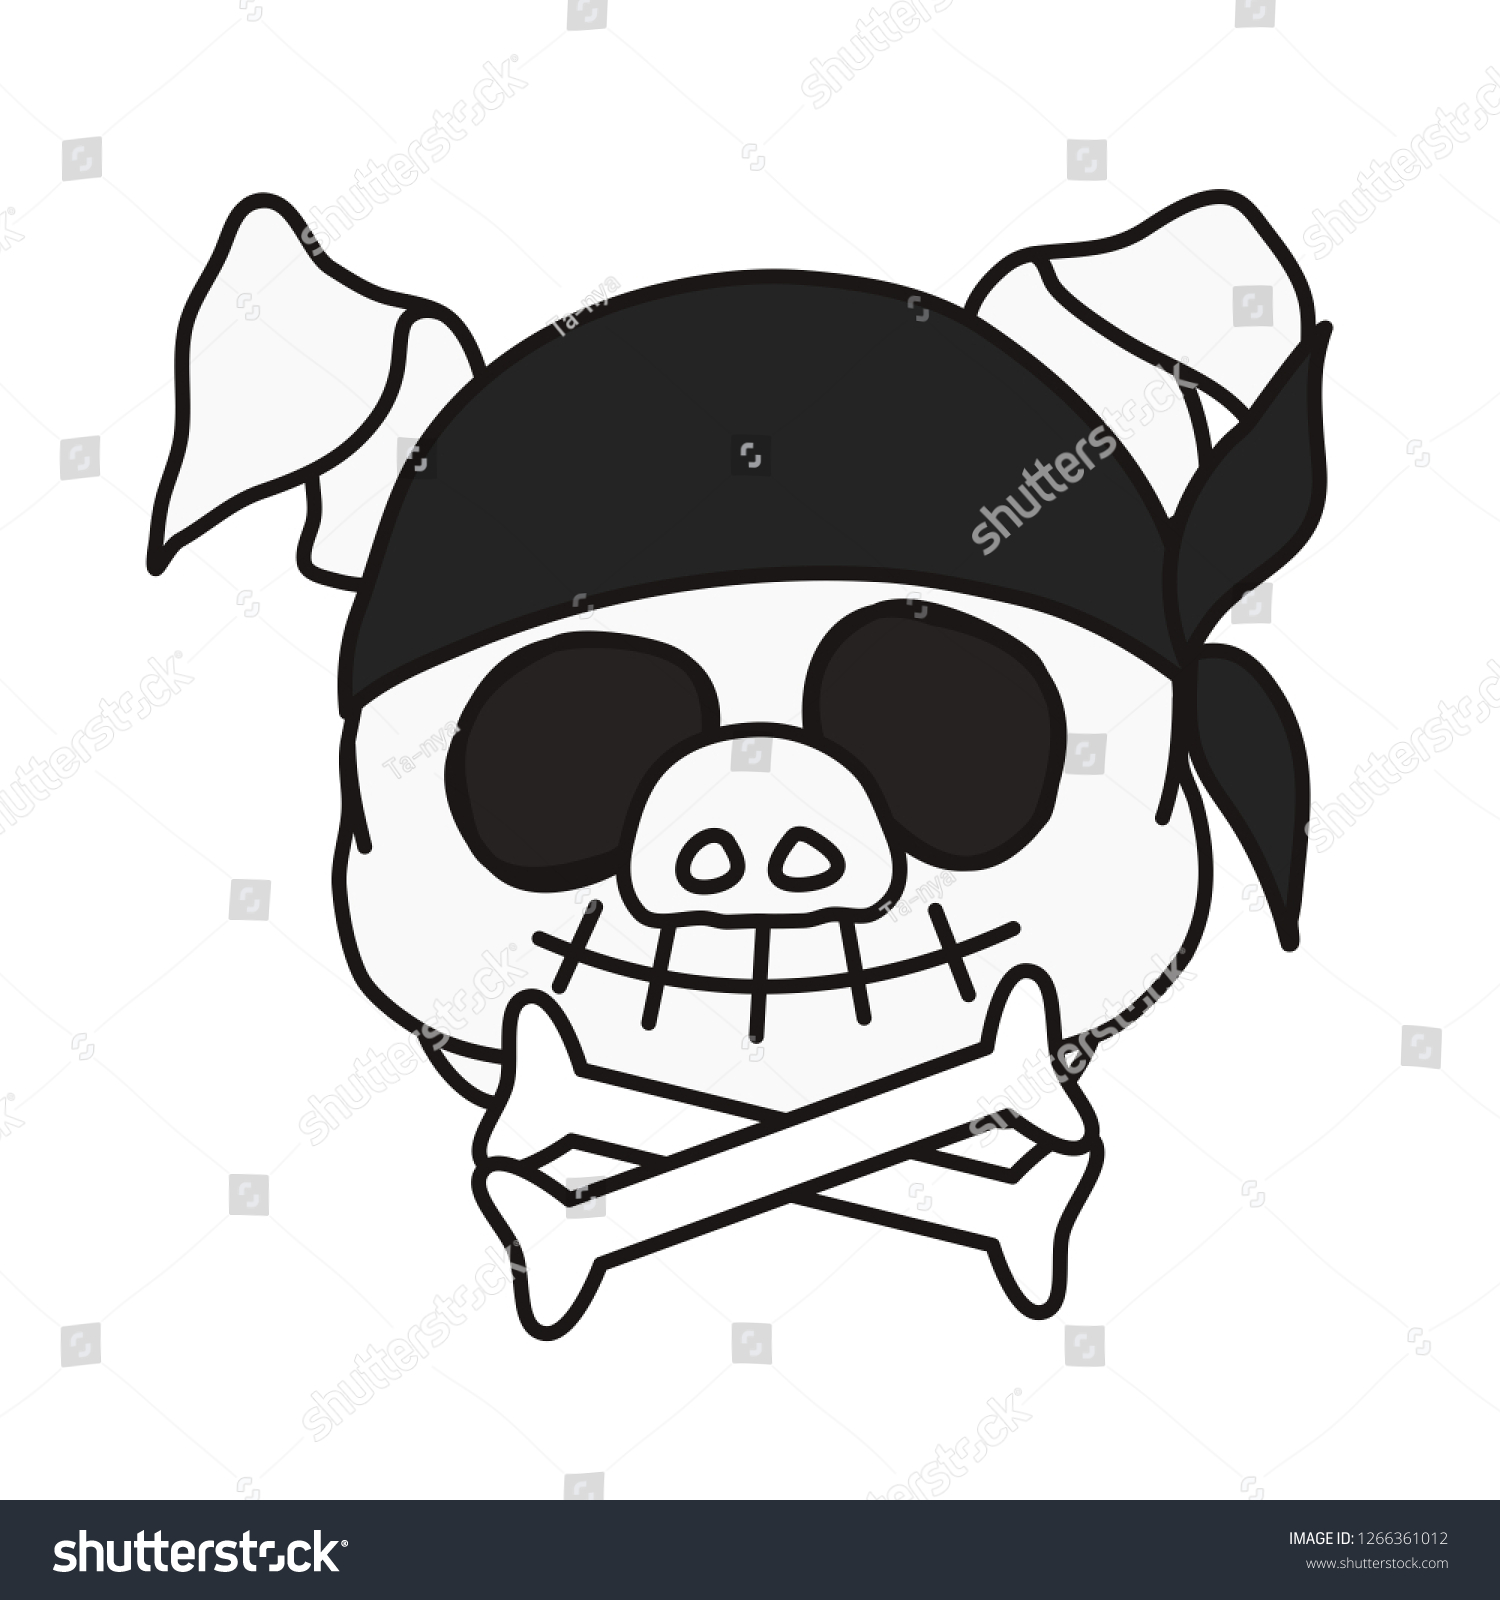 ce7d8e6e4b1 Stock vector emoticon or emoji of pirate death sign smiling jolly roger fat  pig skull with